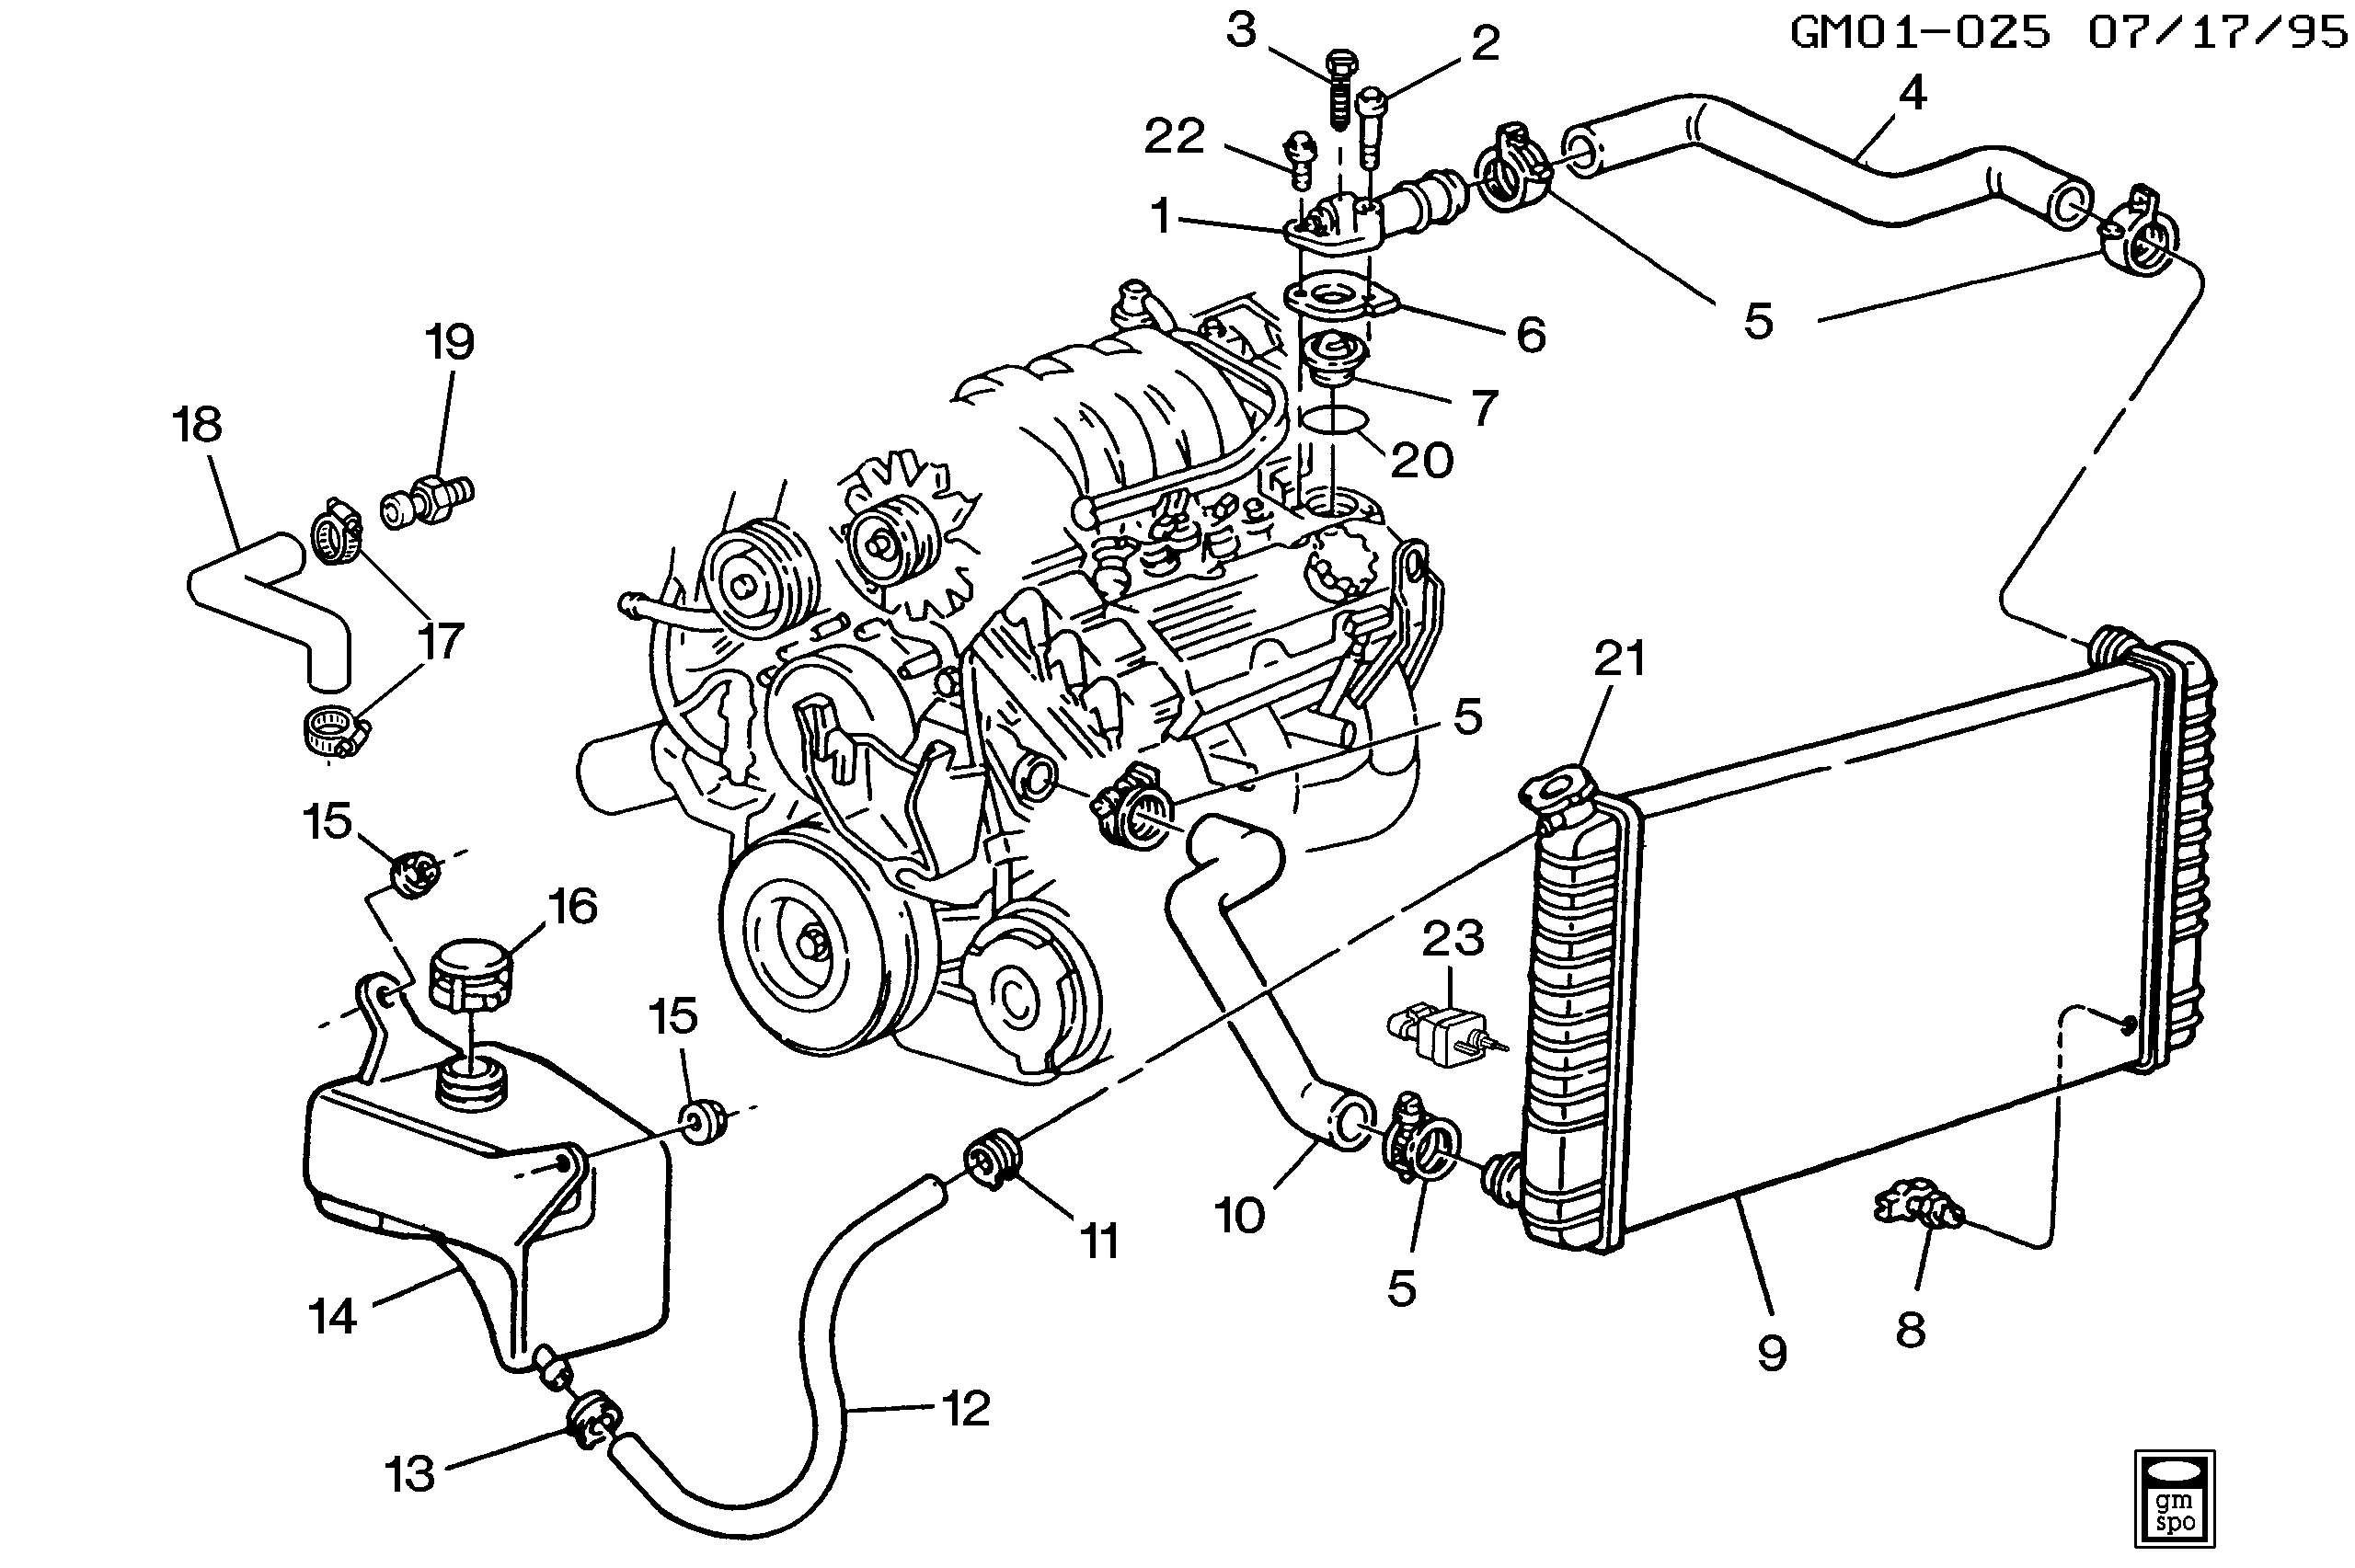 Buick Lesabre Radiator Diagram Simple Wiring Diagrams For 1992 Heater Fan Schematics Ford Taurus H Hoses Pipes